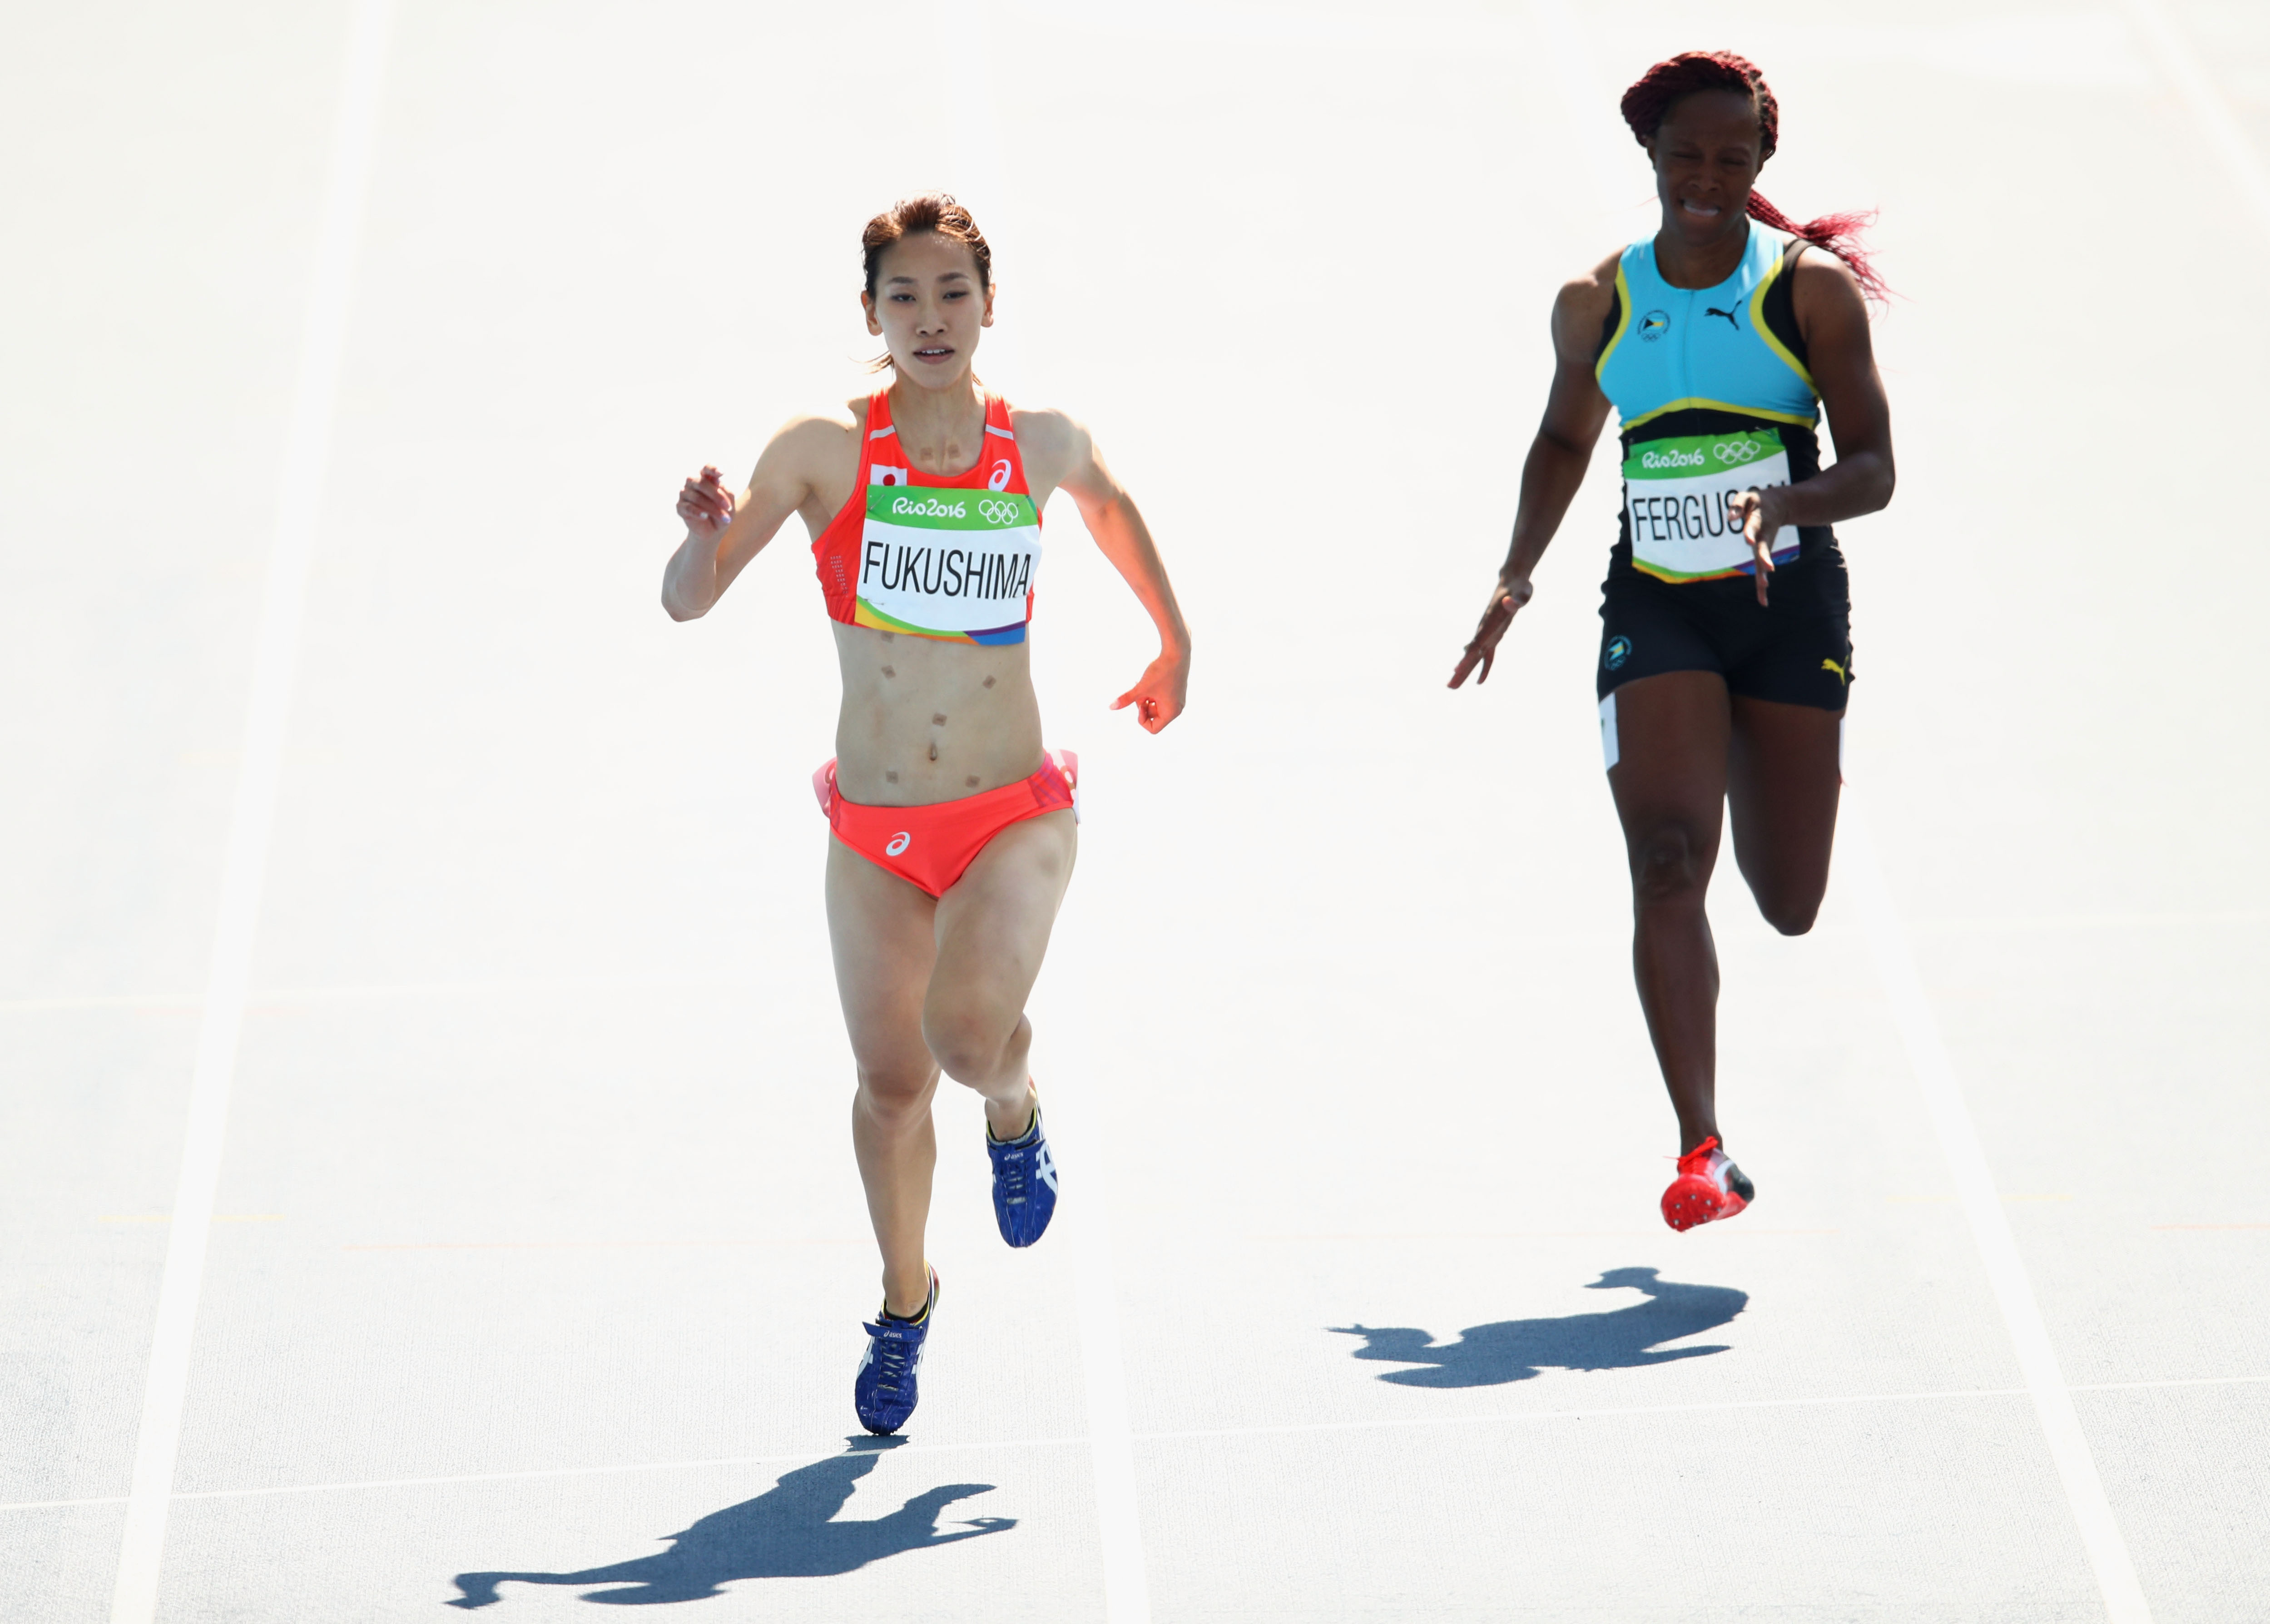 Heres Why Japans Chisato Fukushima Wore Patches While Running In Rio GettyImages 589706520